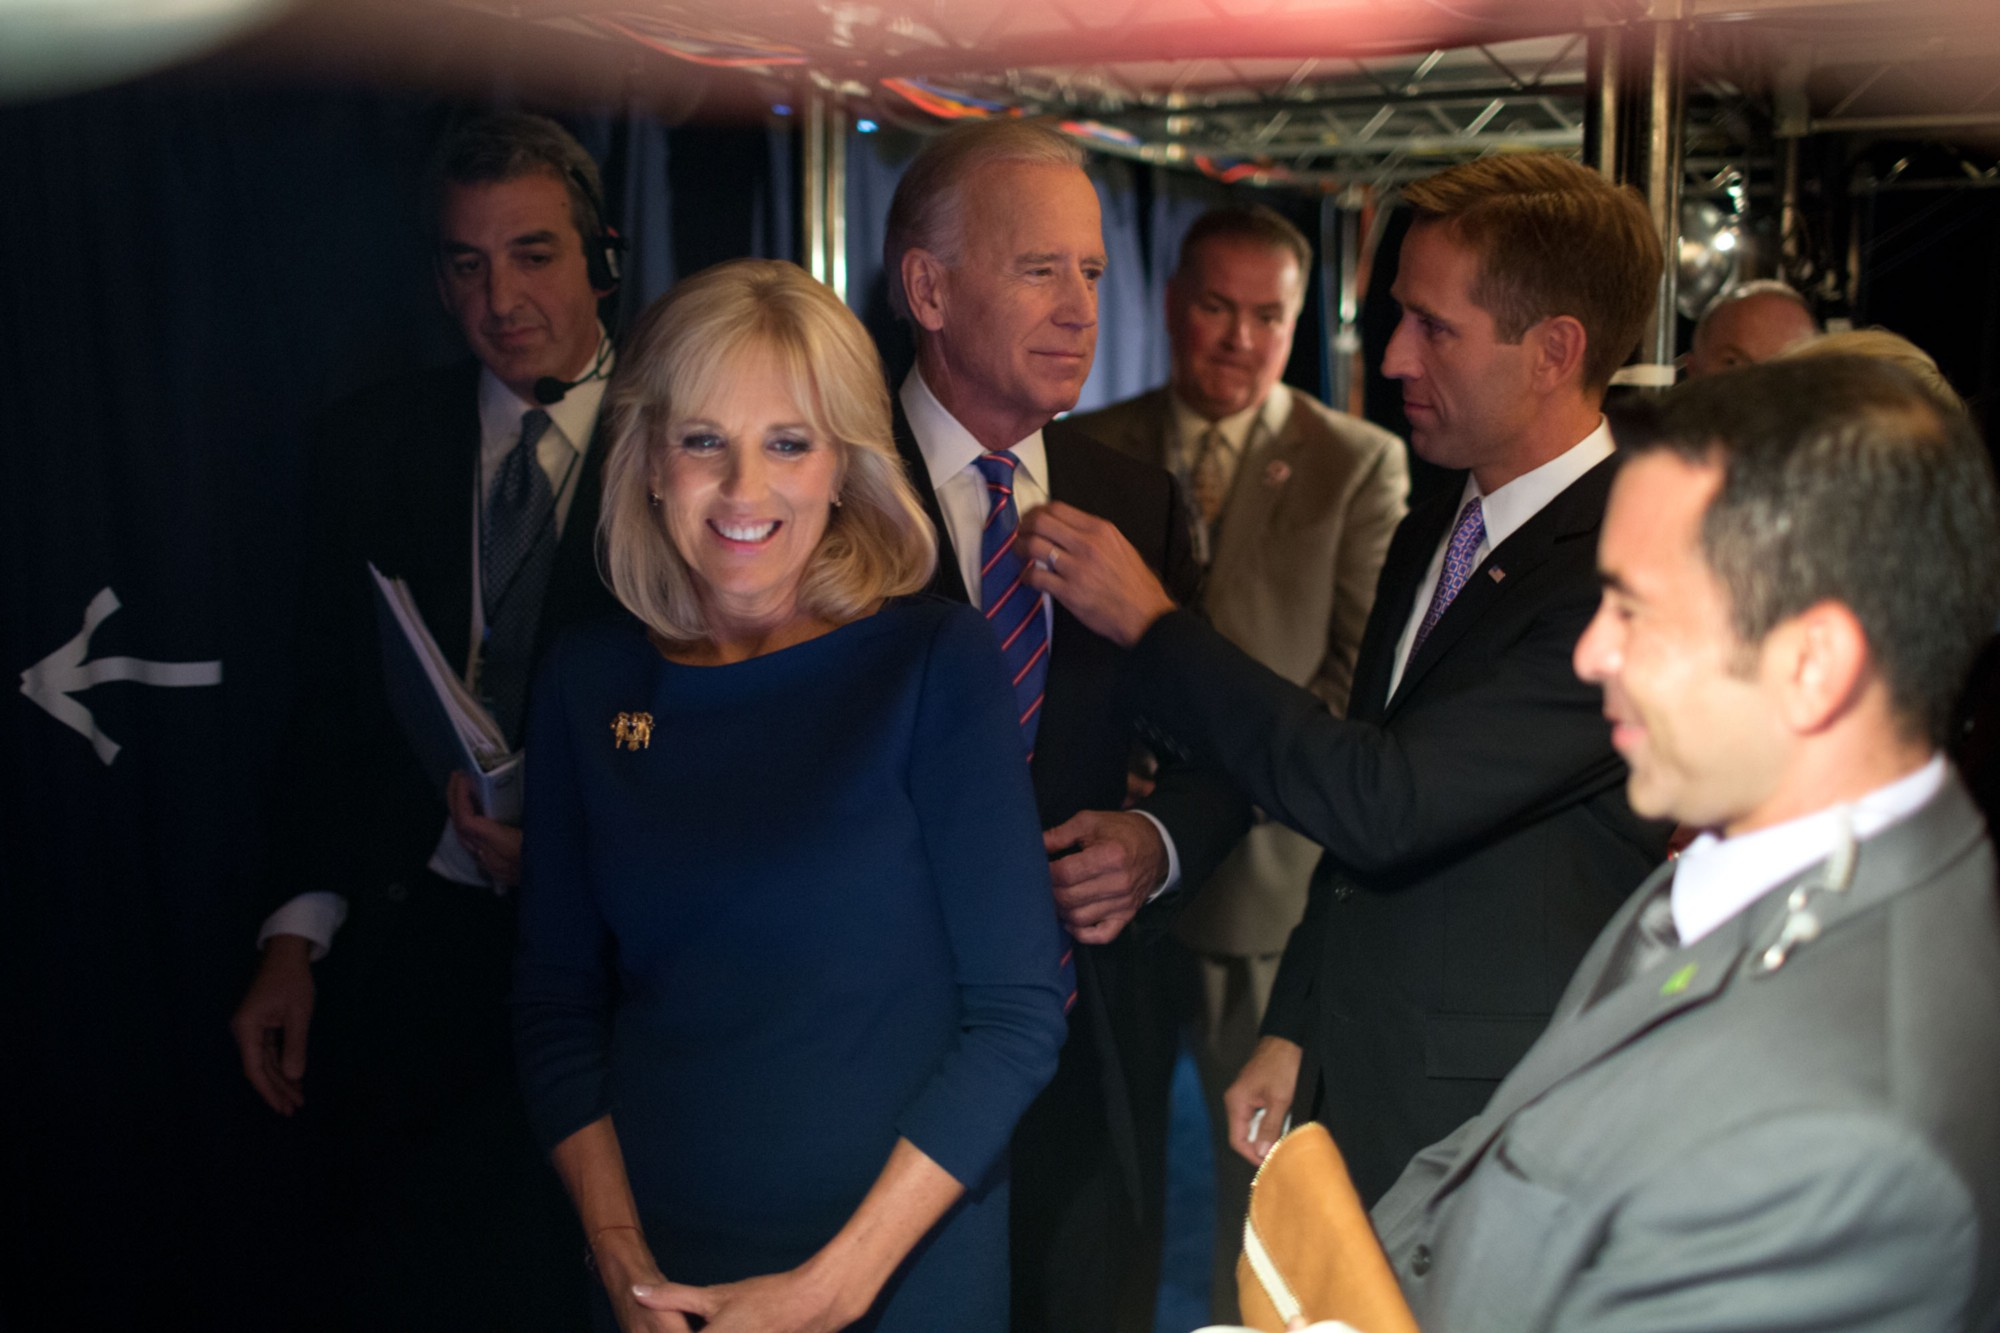 Beau Biden prepares Vice President Biden for an event